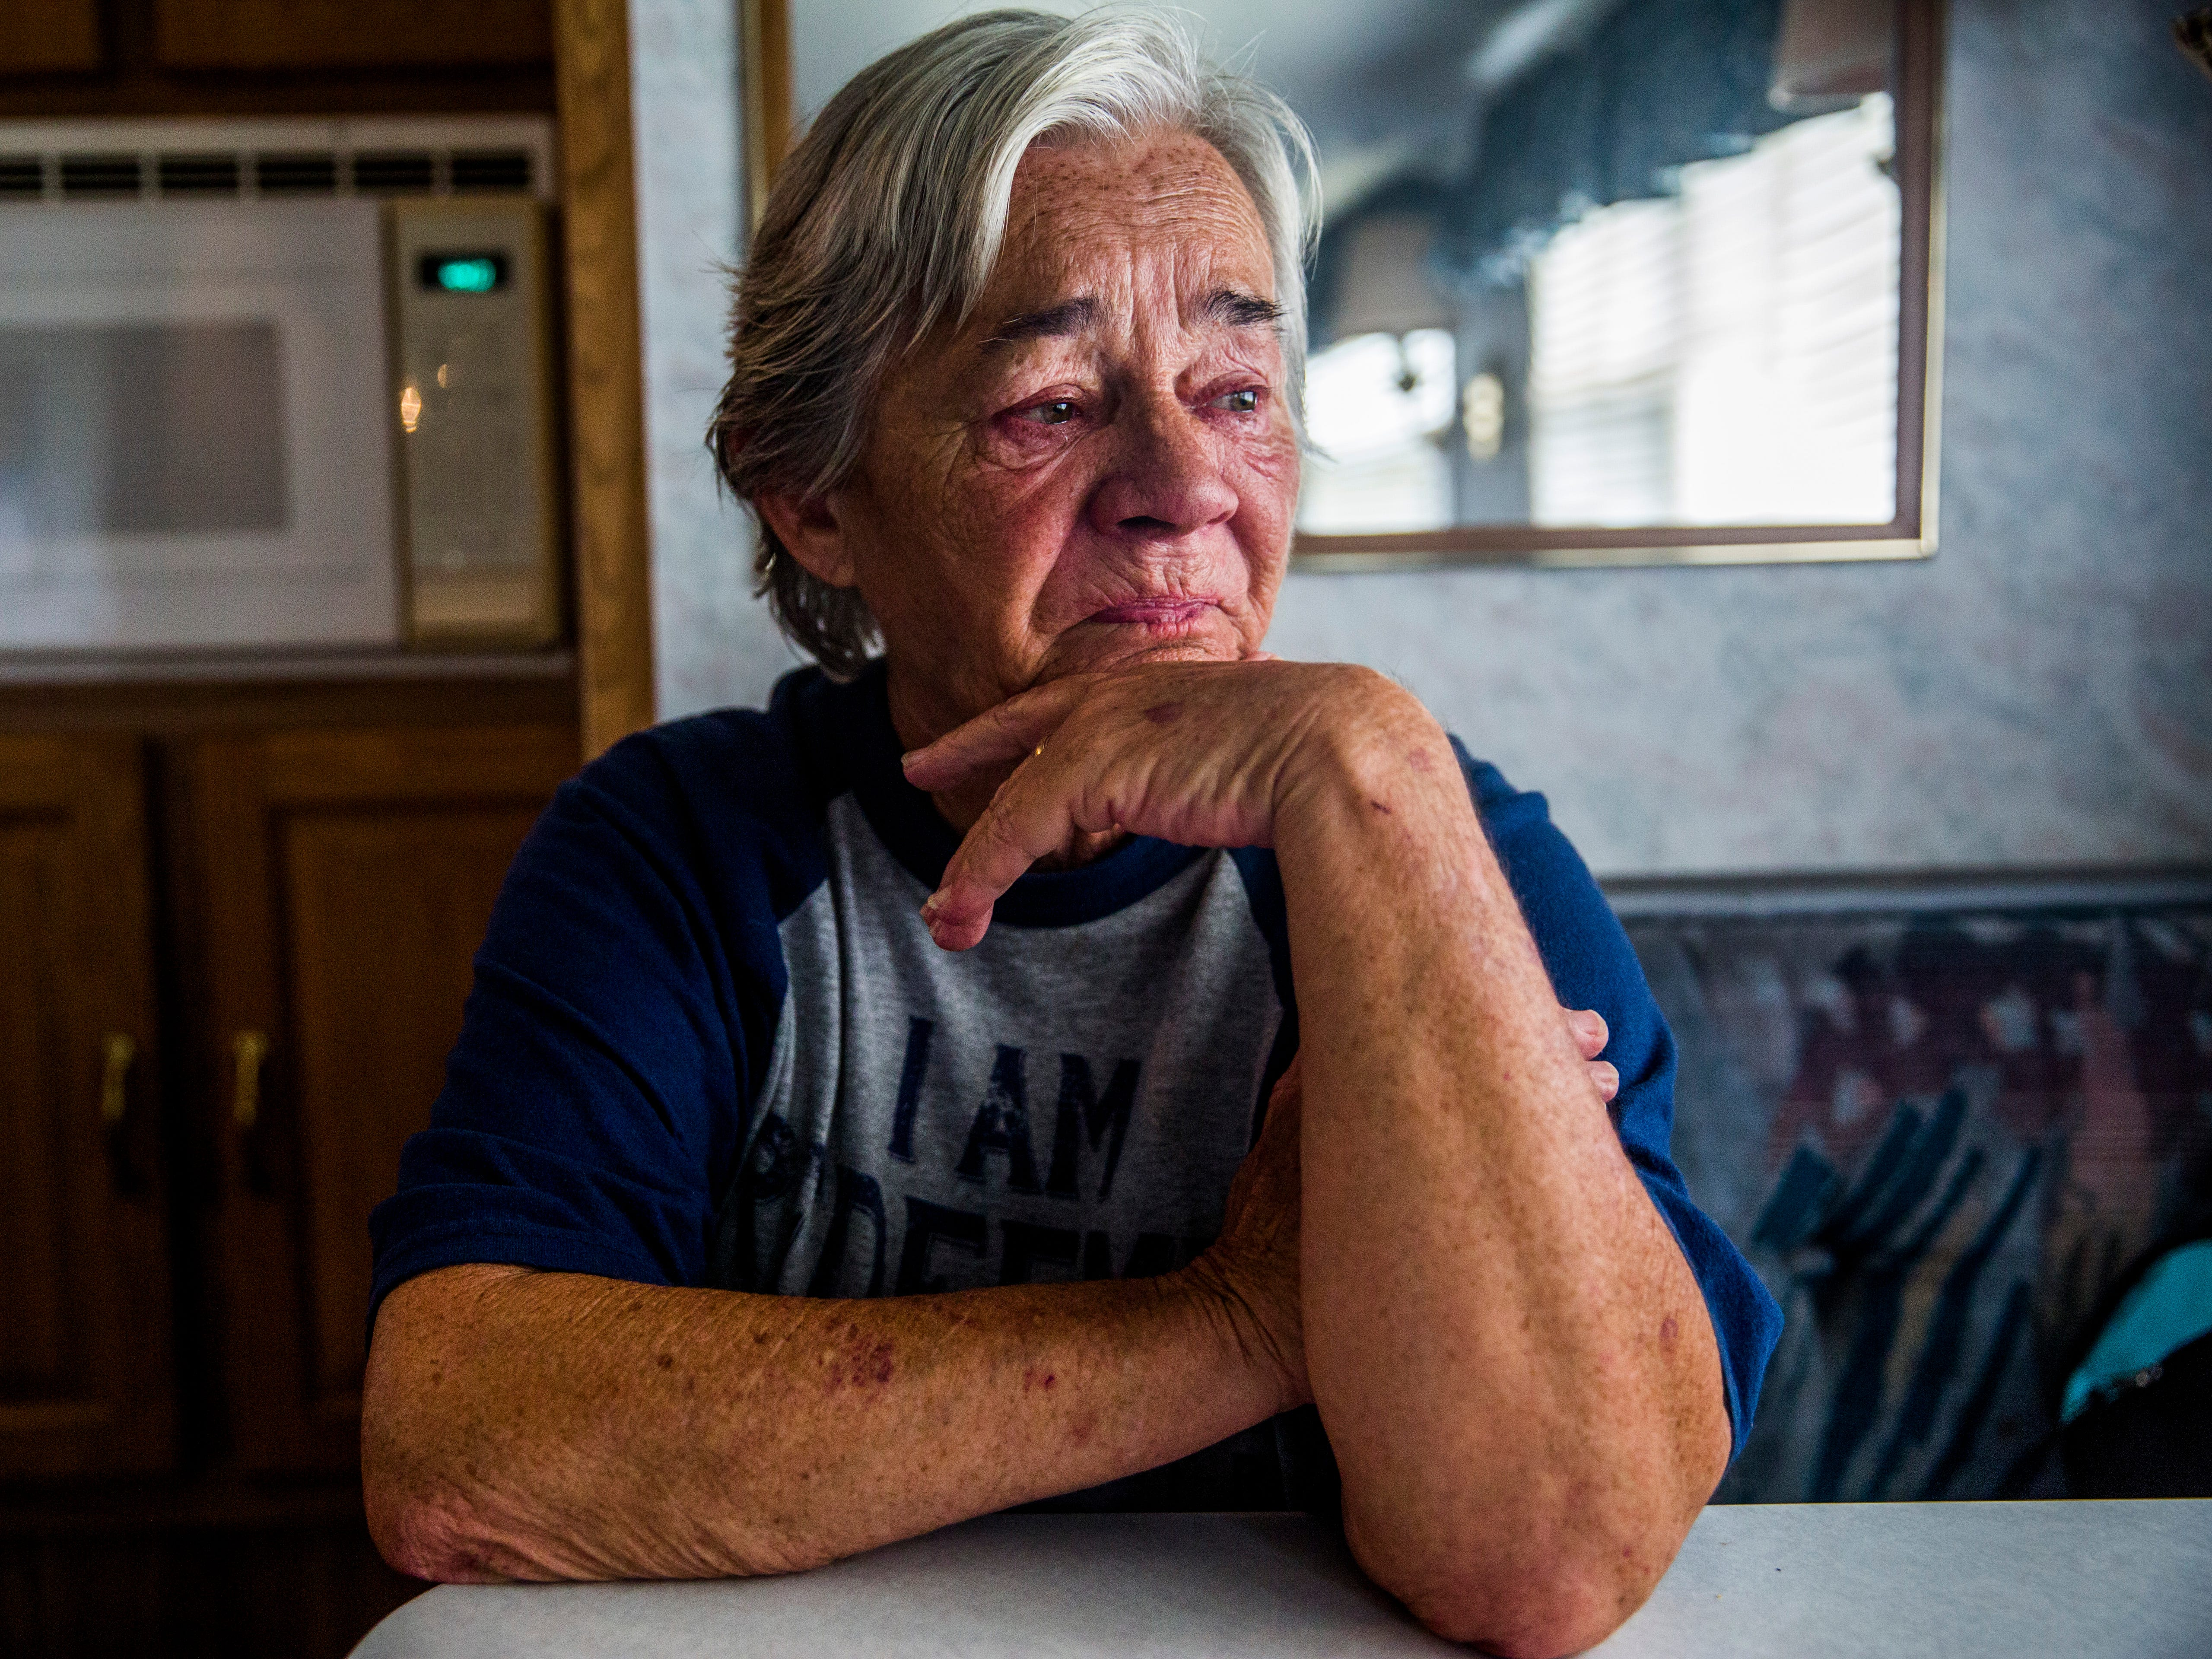 "Debbie Coe, 62, becomes emotional as she talks about losing her Immokalee home when Hurricane Irma hit a year ago, while sitting in her temporary Immokalee home on Wednesday, Aug. 22, 2018. Coe has custody of her 6-year-old great-nephew and has been caring for him alone since her husband died in February 2017. They are staying in an RV while they wait for their home to be rebuilt by the Guadalupe Center. Coe's home will be the nonprofit's first home rebuild port-Irma. ""I have a roof over my head. My stove don't work, my refrigerator don't work, but I have a roof over my head,"" Coe says."